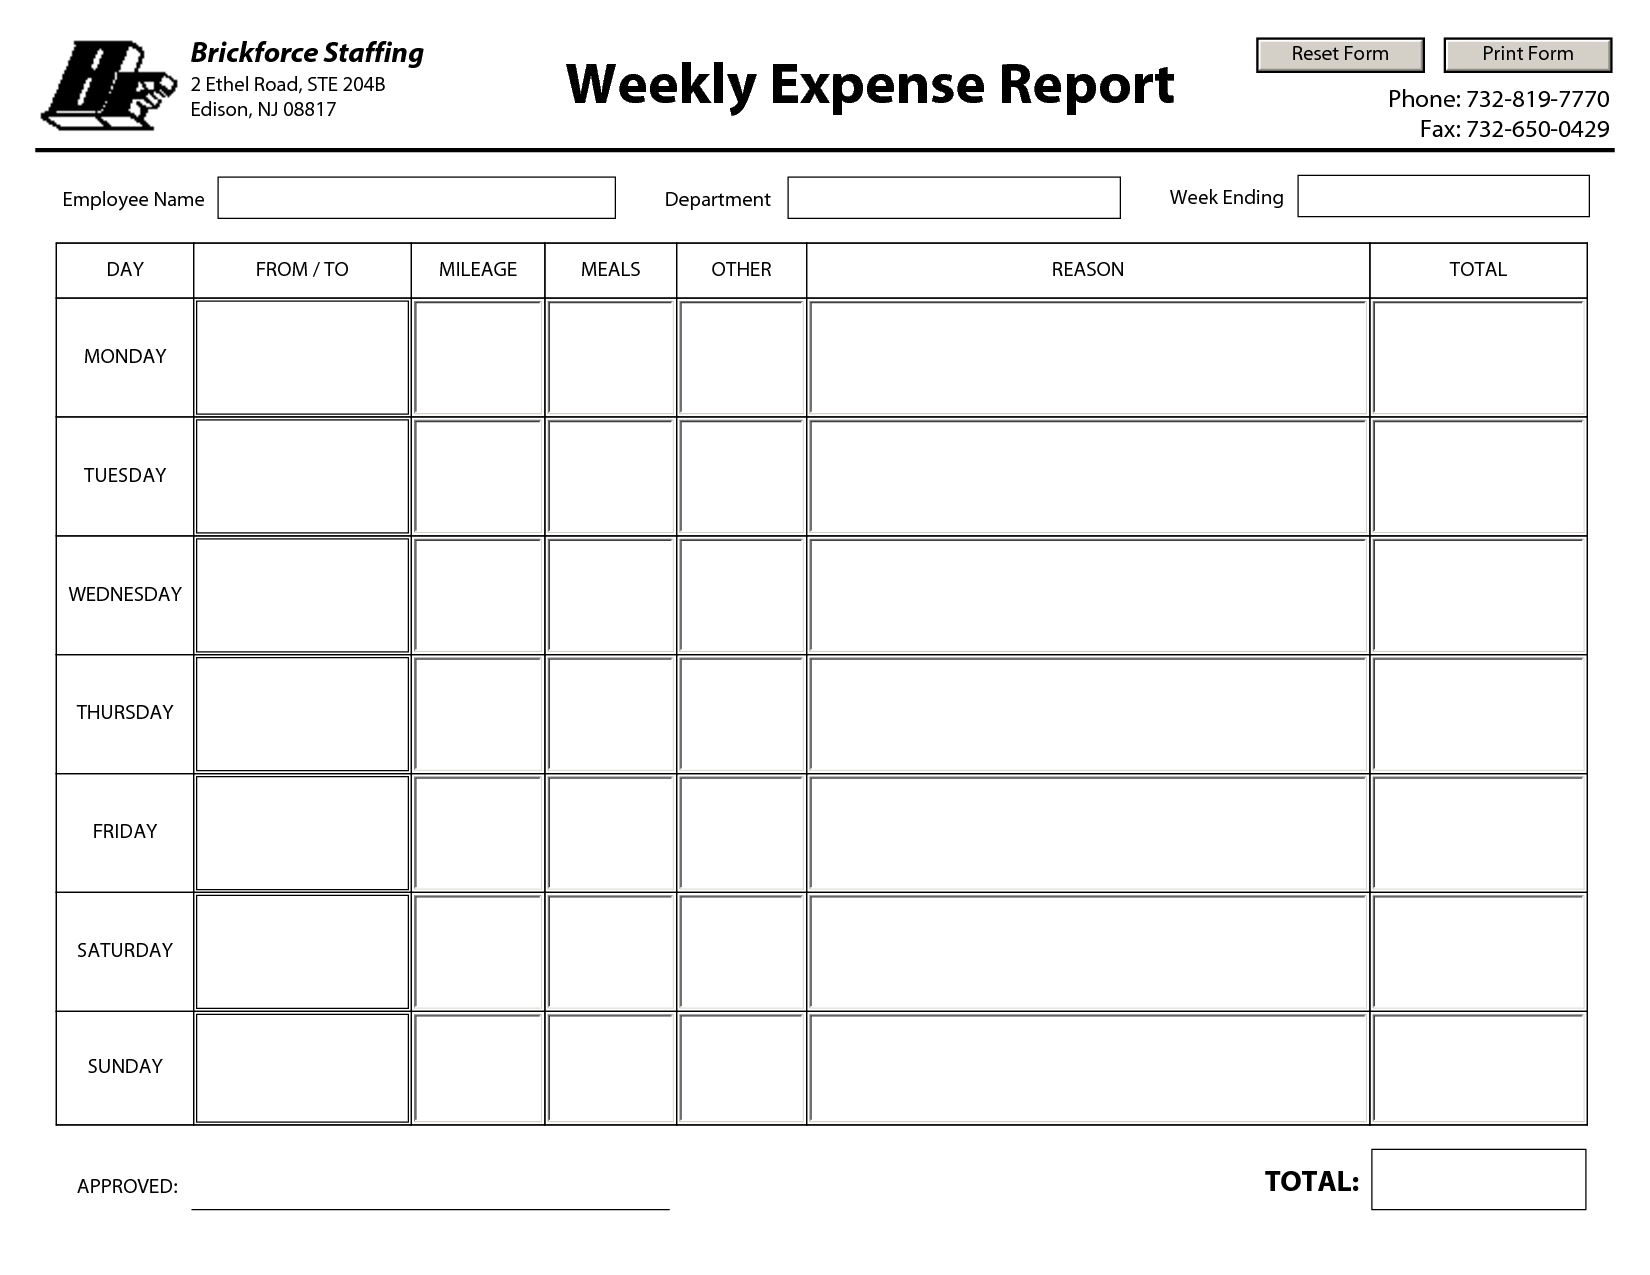 7 Best Images of Free Printable Weekly Expense Report - Free ...